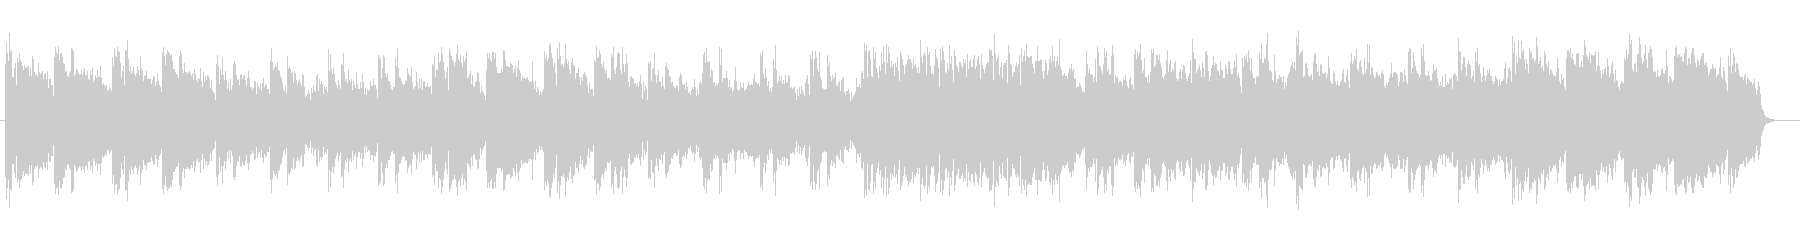 Cheerful relaxation music's unreproduced waveform